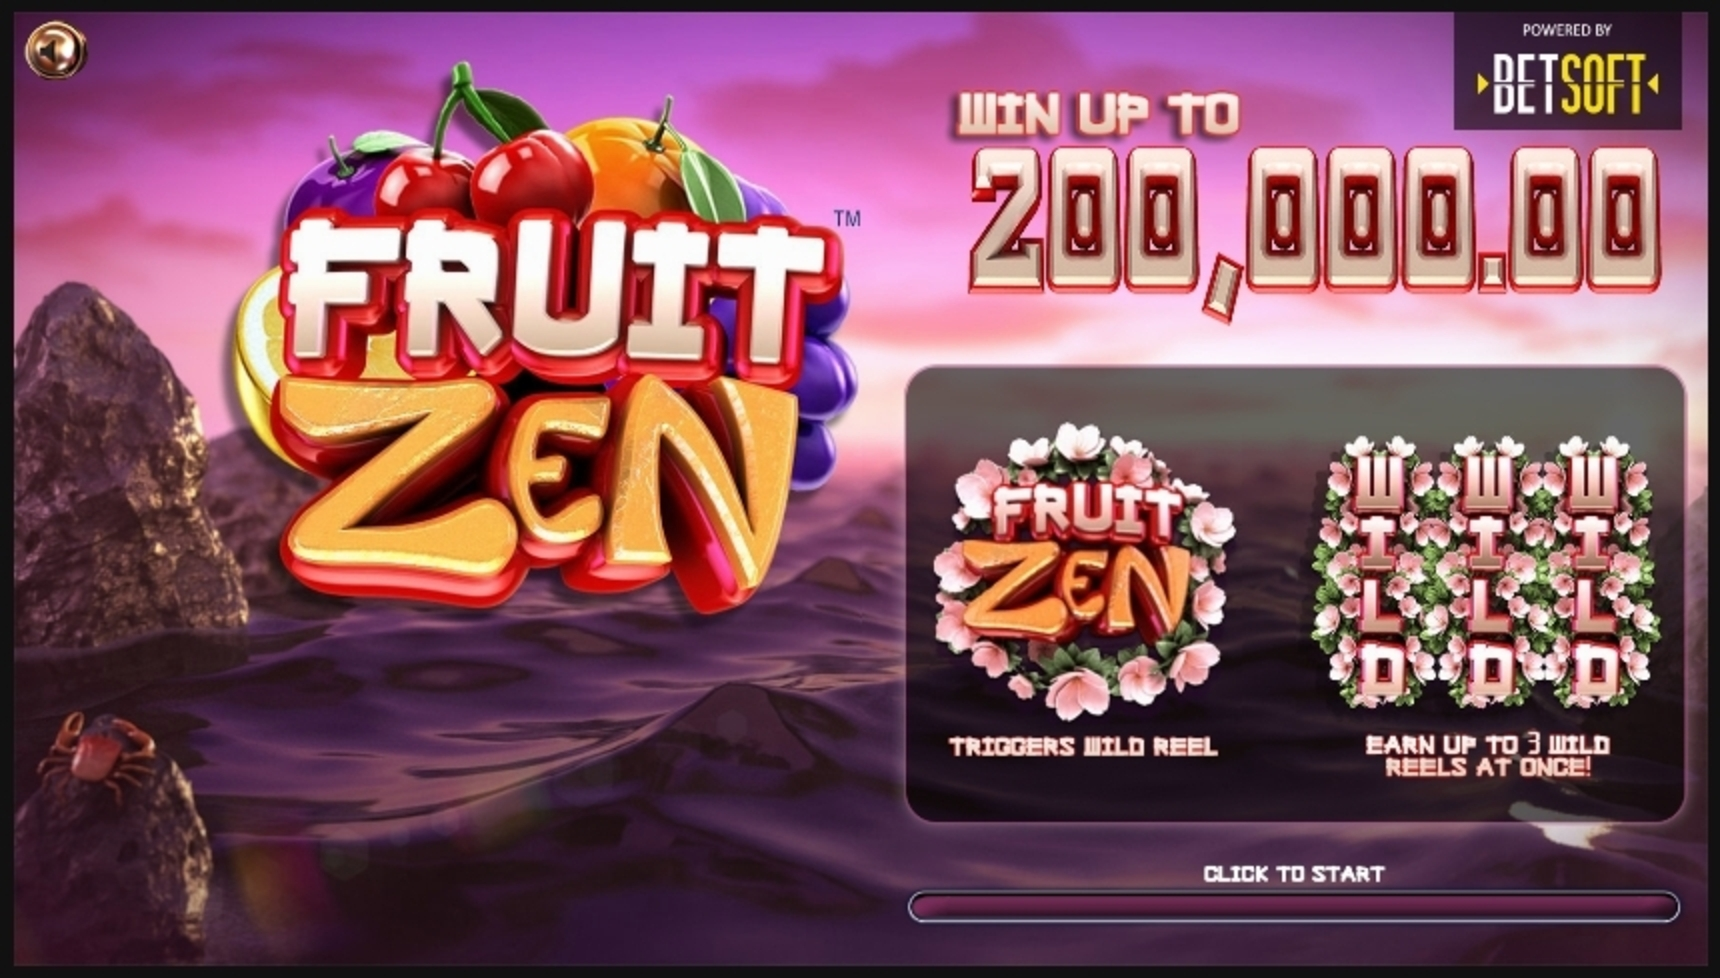 Play Fruit Zen Free Casino Slot Game by Betsoft